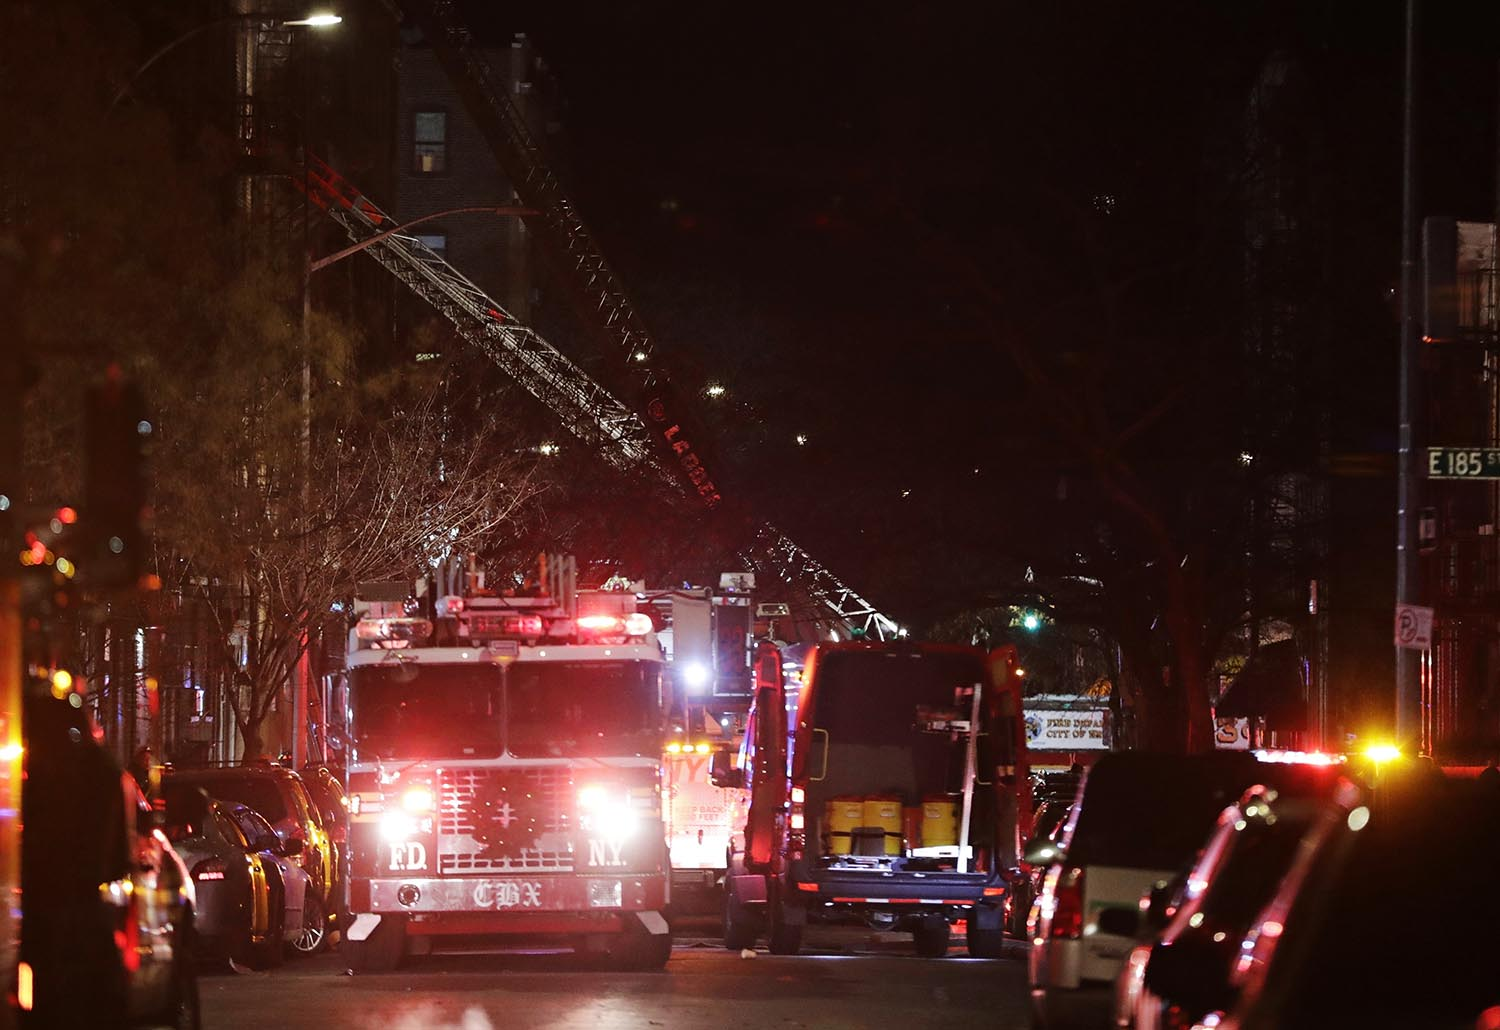 <div class='meta'><div class='origin-logo' data-origin='AP'></div><span class='caption-text' data-credit='AP Photo/Frank Franklin II'>Firefighters respond to a deadly fire Thursday, Dec. 28, 2017, in the Bronx borough of New York.</span></div>